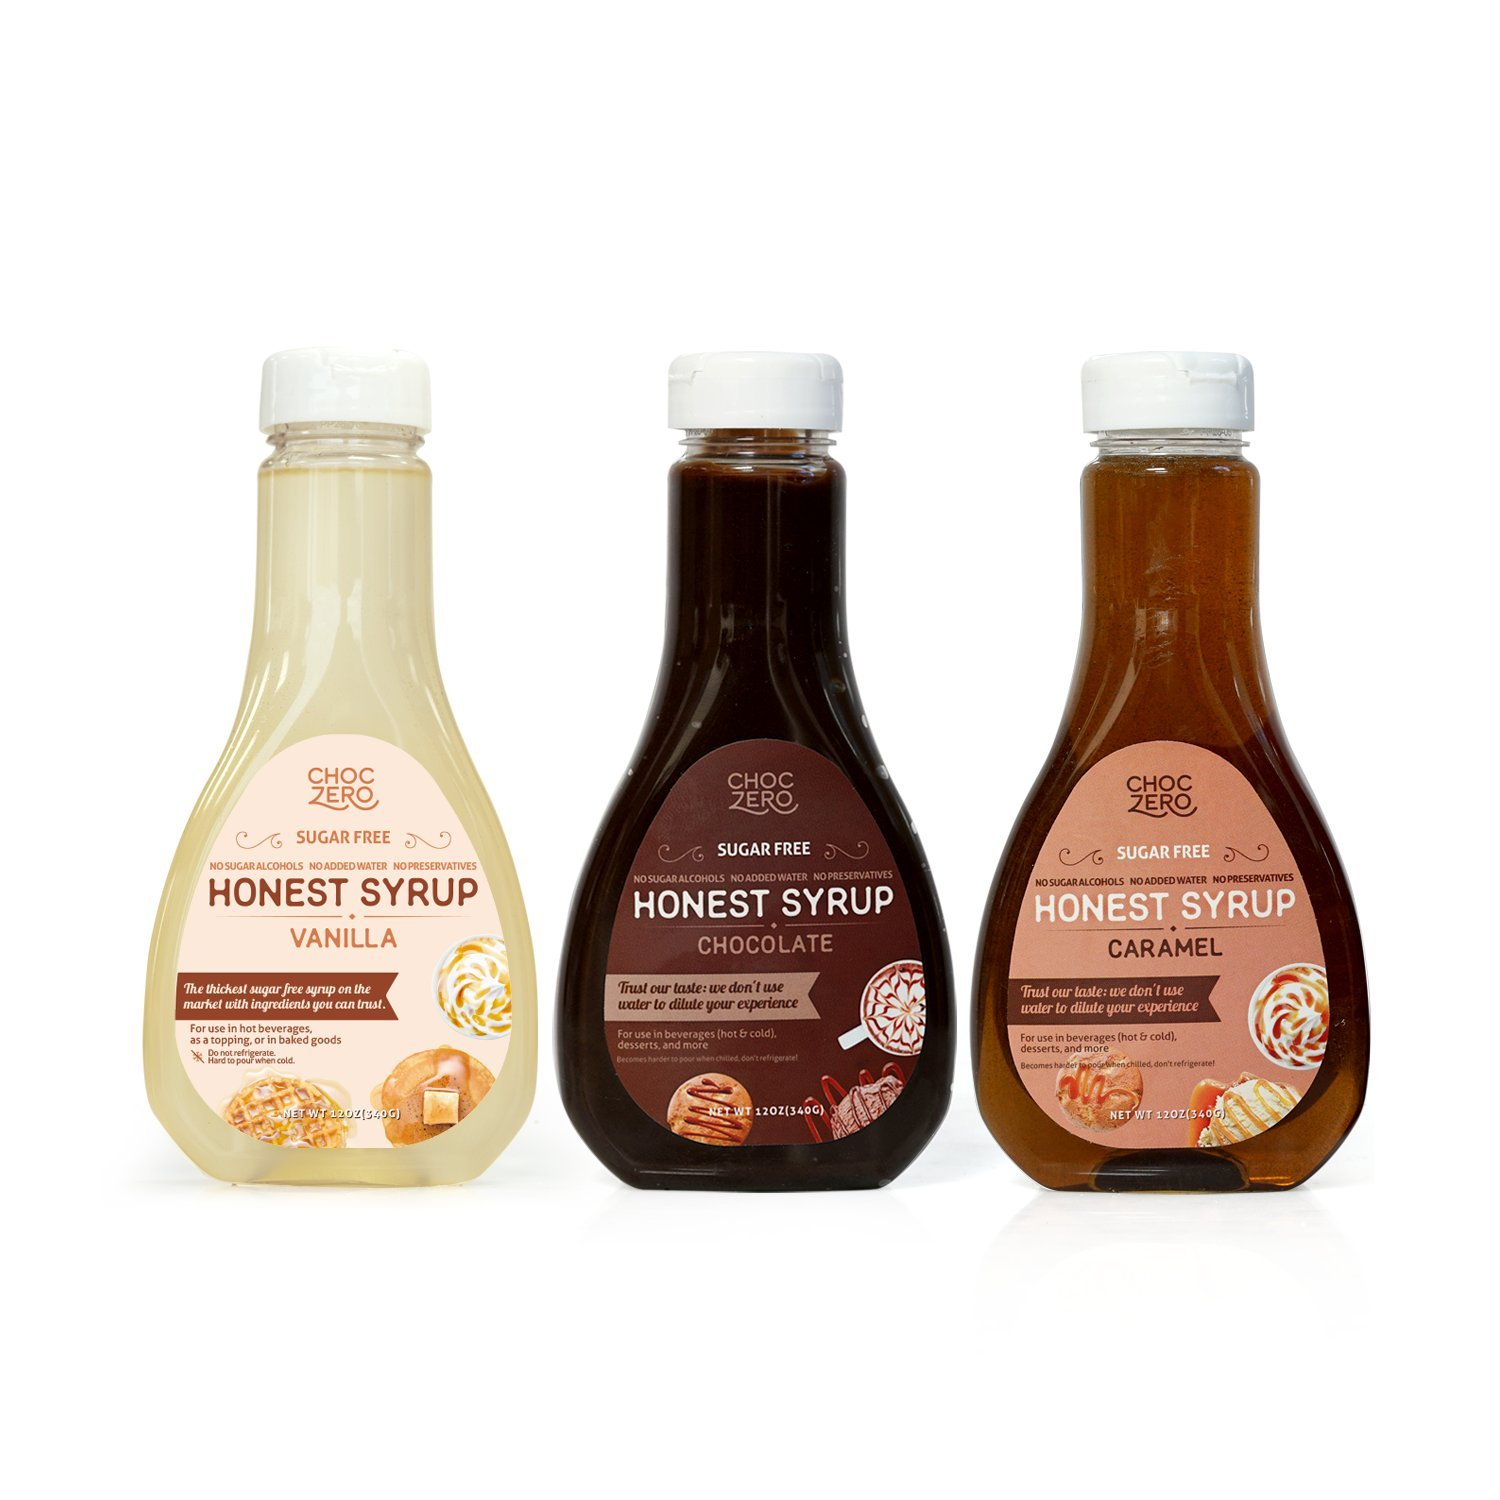 ChocZero's Chocolate Syrup, Caramel Syrup and Vanilla Syrup, 3 Pack Combo. Sugar Free, Low Net Carb, No Preservatives. Gluten Free. No Sugar Alcohol. Dessert and breakfast toppings.(3 Bottles)